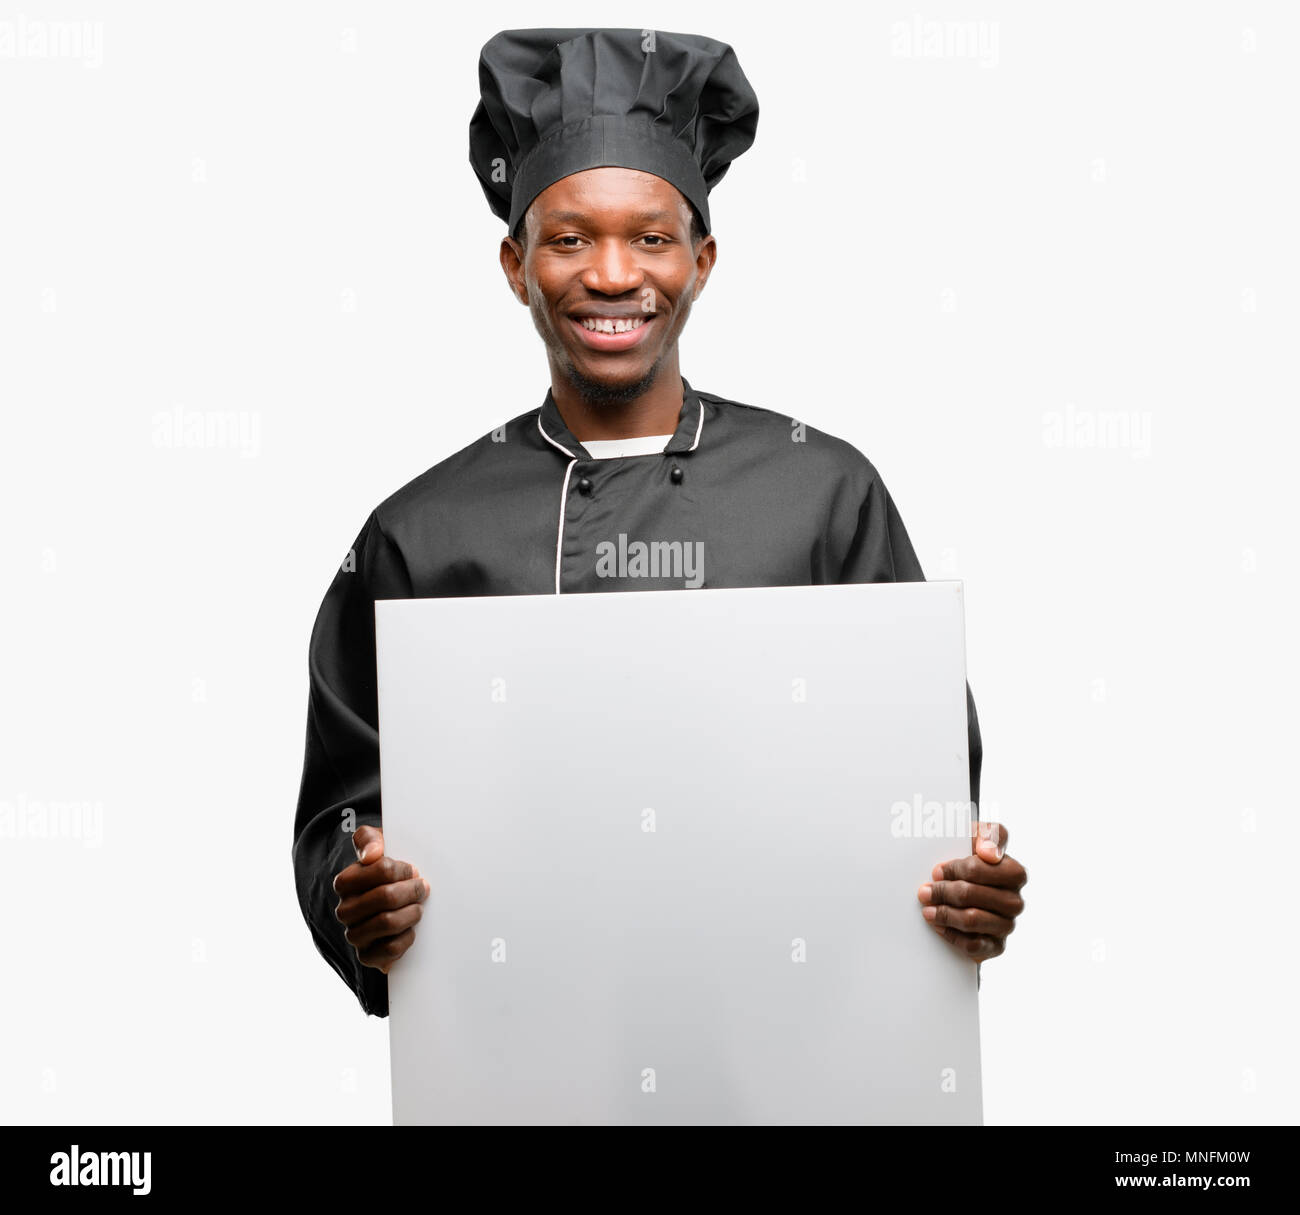 Gaylord recommend best of black cook